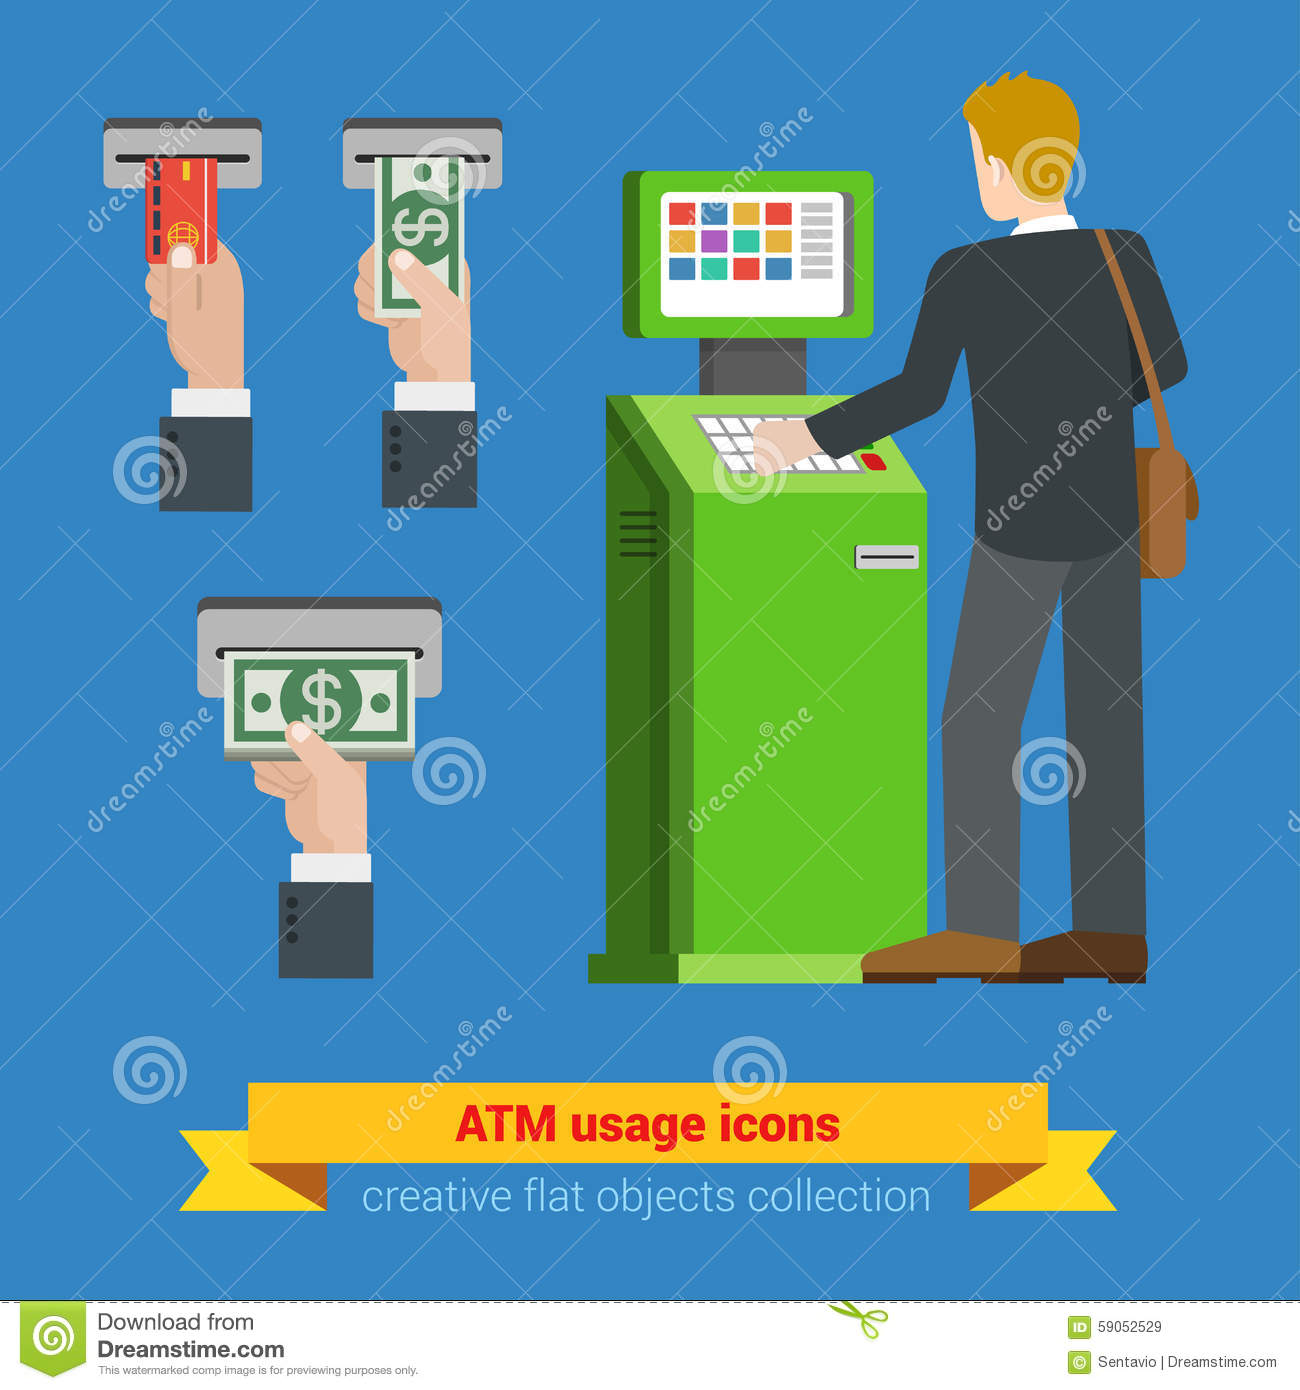 ATM terminal usage bank credit card money banknote icons. Payment options banking finance money flat 3d web isometric infographic